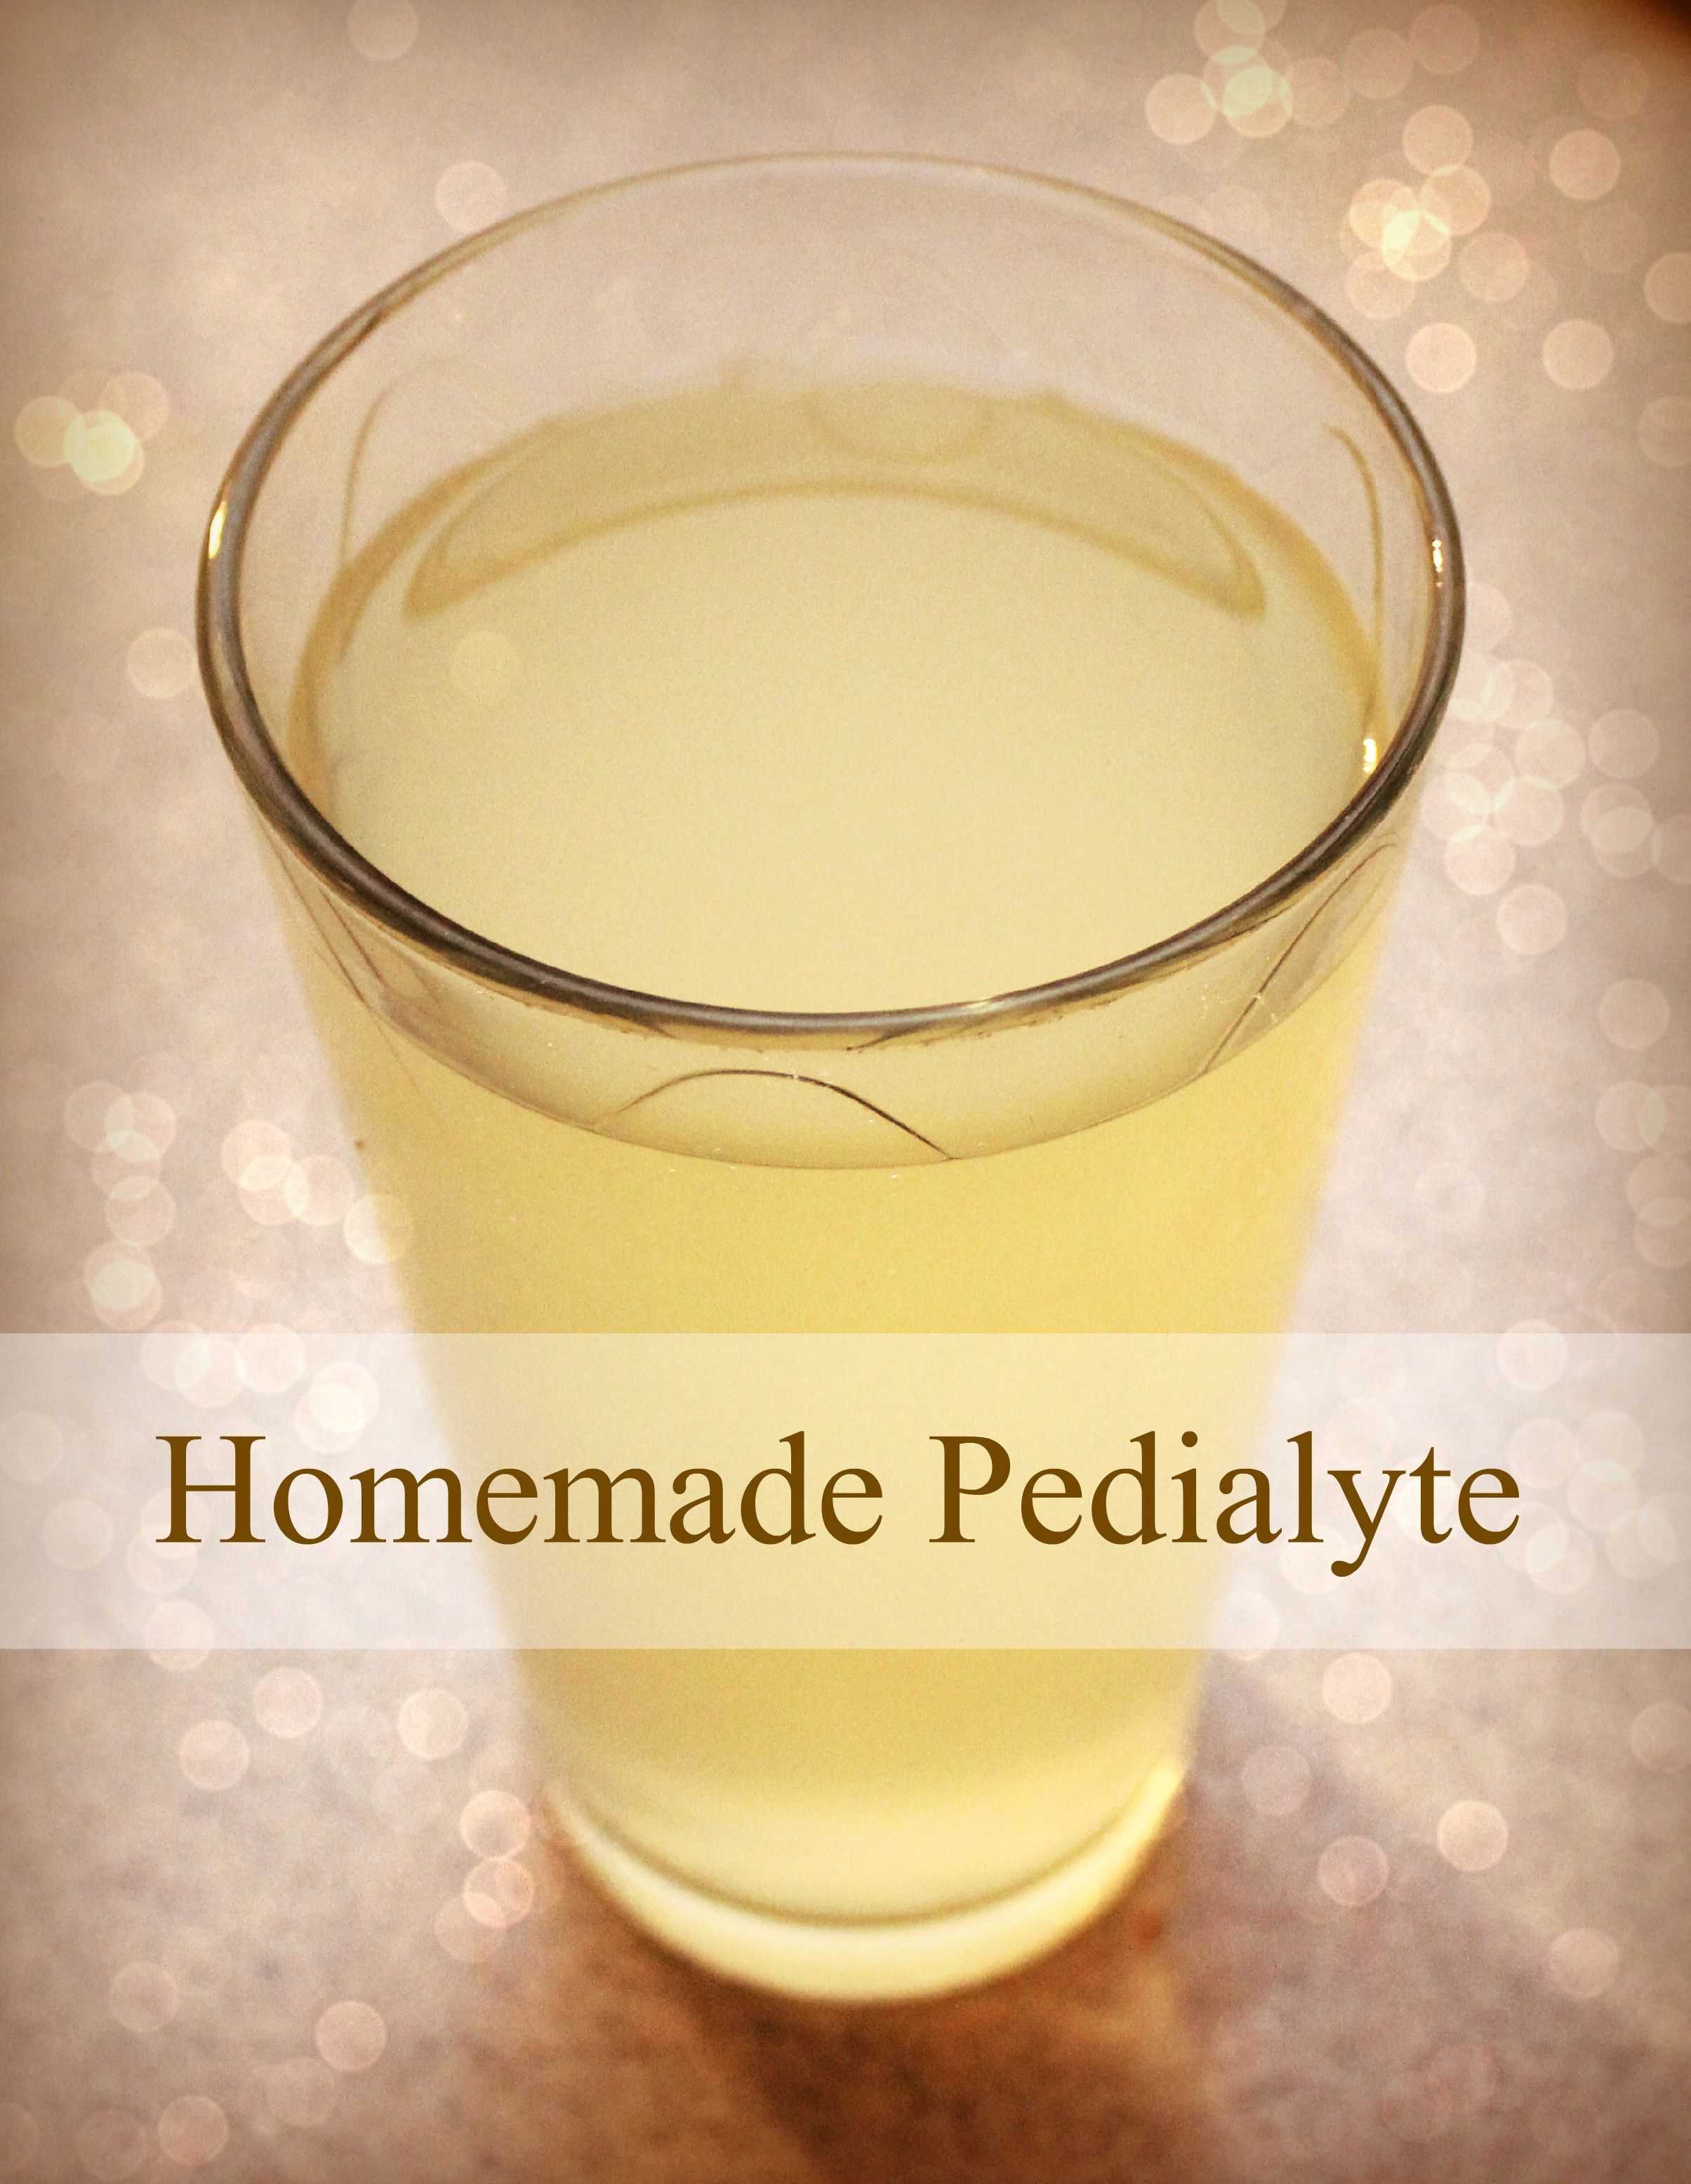 Homemade Pedialyte Recipe - honey not sugar. Can make into sicky popsicles